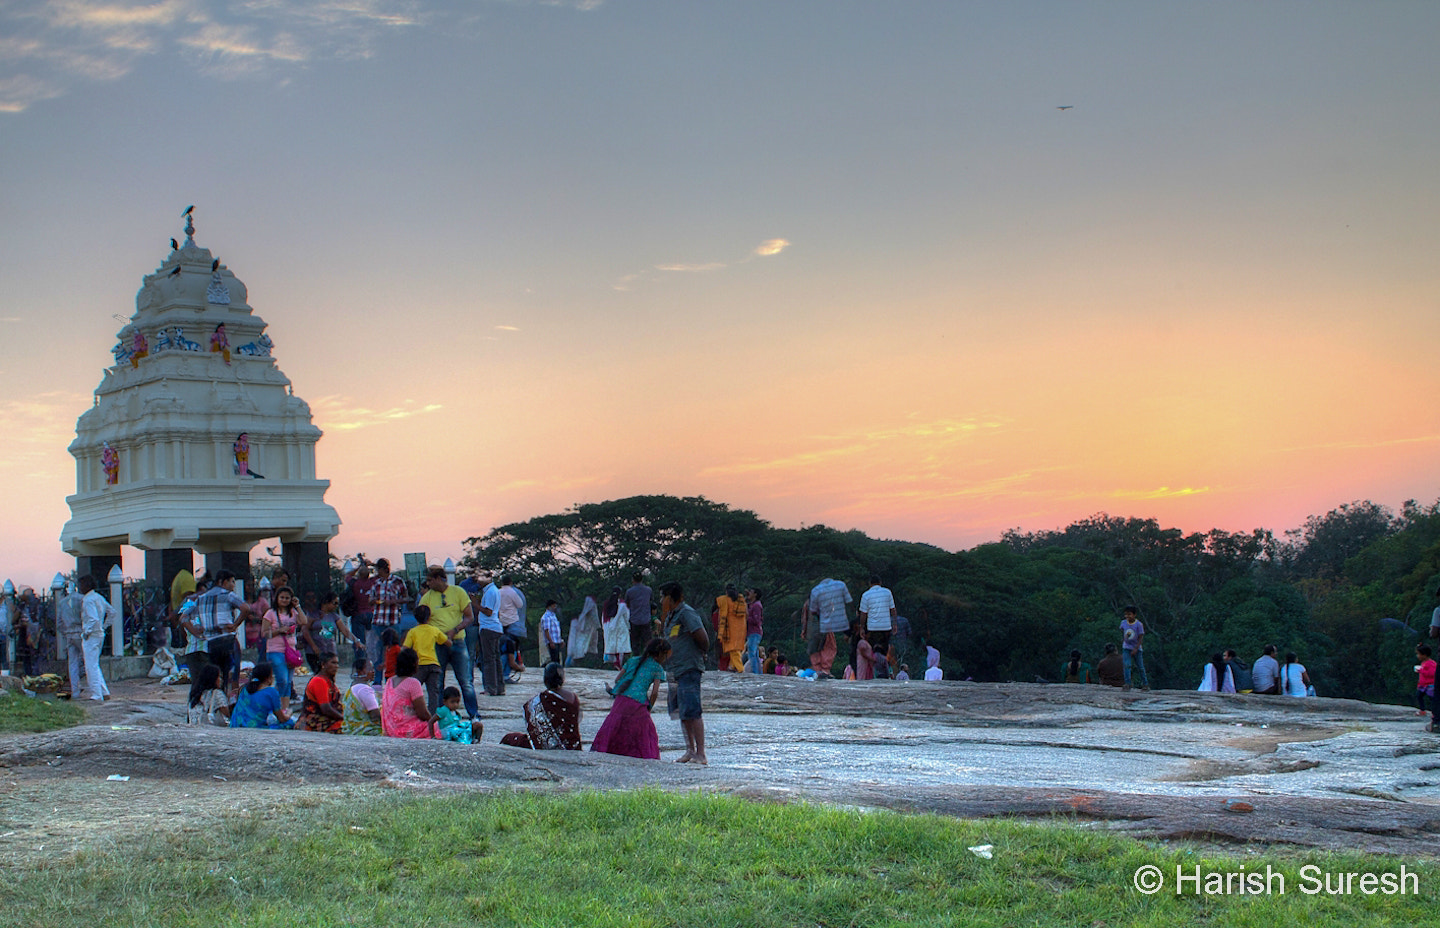 Photograph Kempegowda Tower on top of Lal Bagh by Harish Suresh on 500px